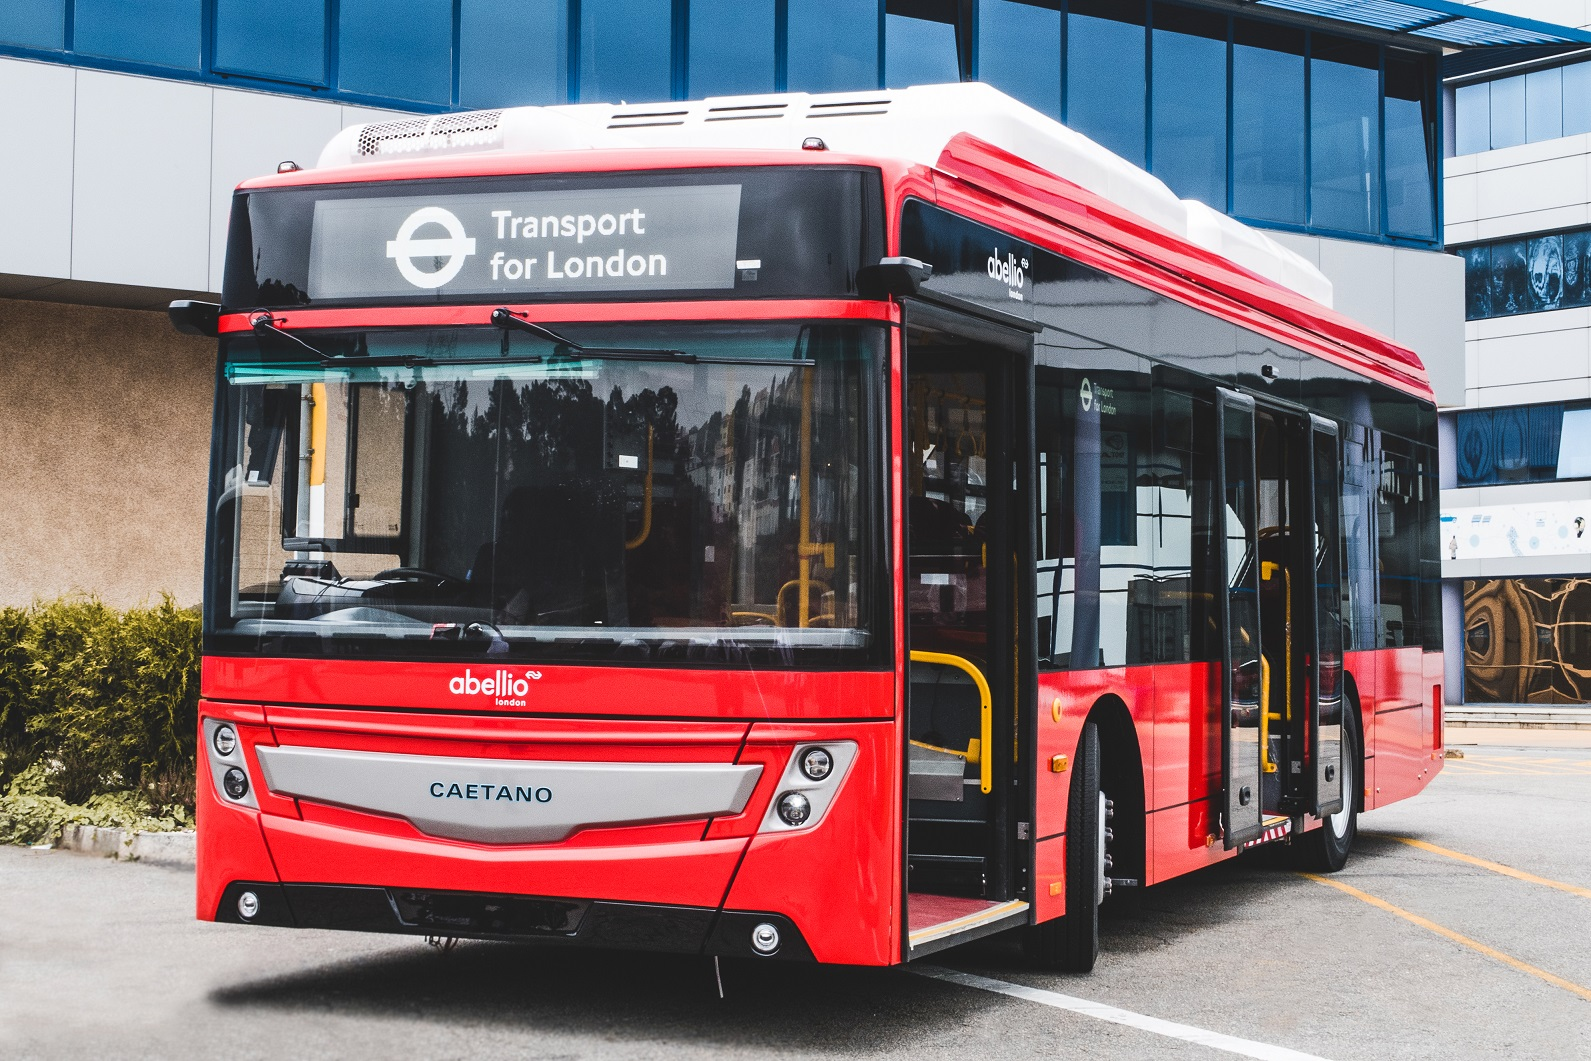 Abellio London Bus orders 34 CAETANO electric buses for its TfL operation